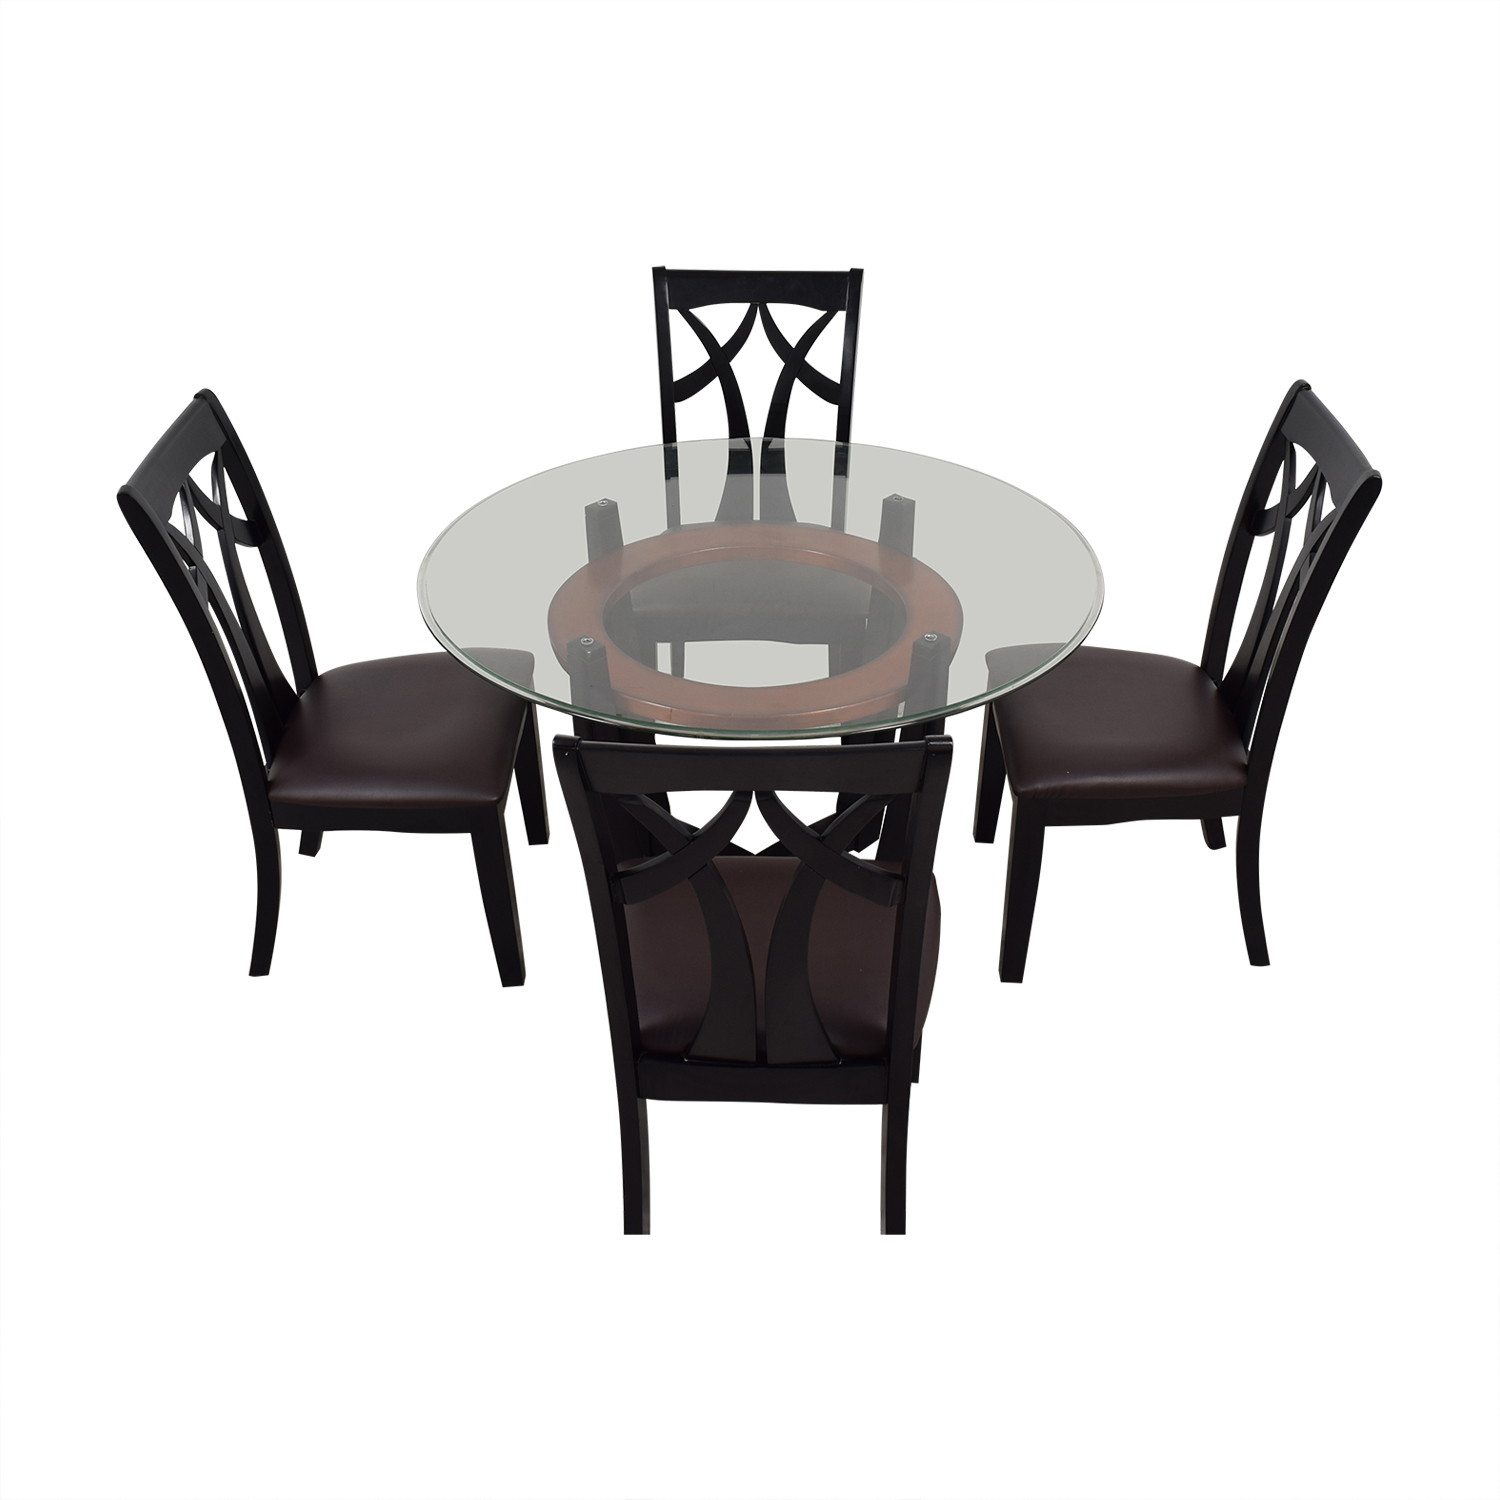 buy Raymour & Flanigan Raymour & Flanigan Wood and Glass Dining Set online